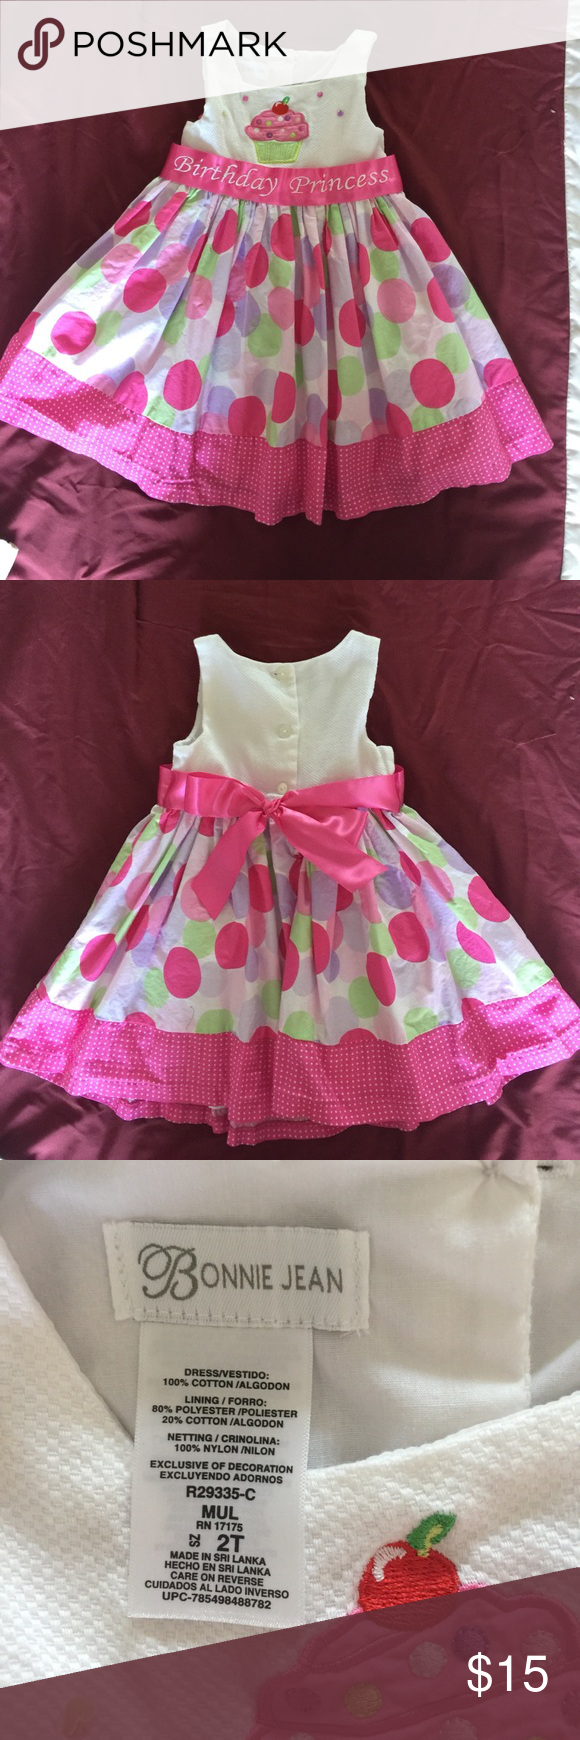 "Bonnie Jean Birthday Princess Dress Toddler Girl Pretty pink white polka dots party dress with cute cupcake design at the front bodice. ""Birthday Princess"" pink ribbon around the waist that ties into a pretty bow at the back.  Perfect birthday dress for your 2 year old! Bonnie Jean Dresses Formal"